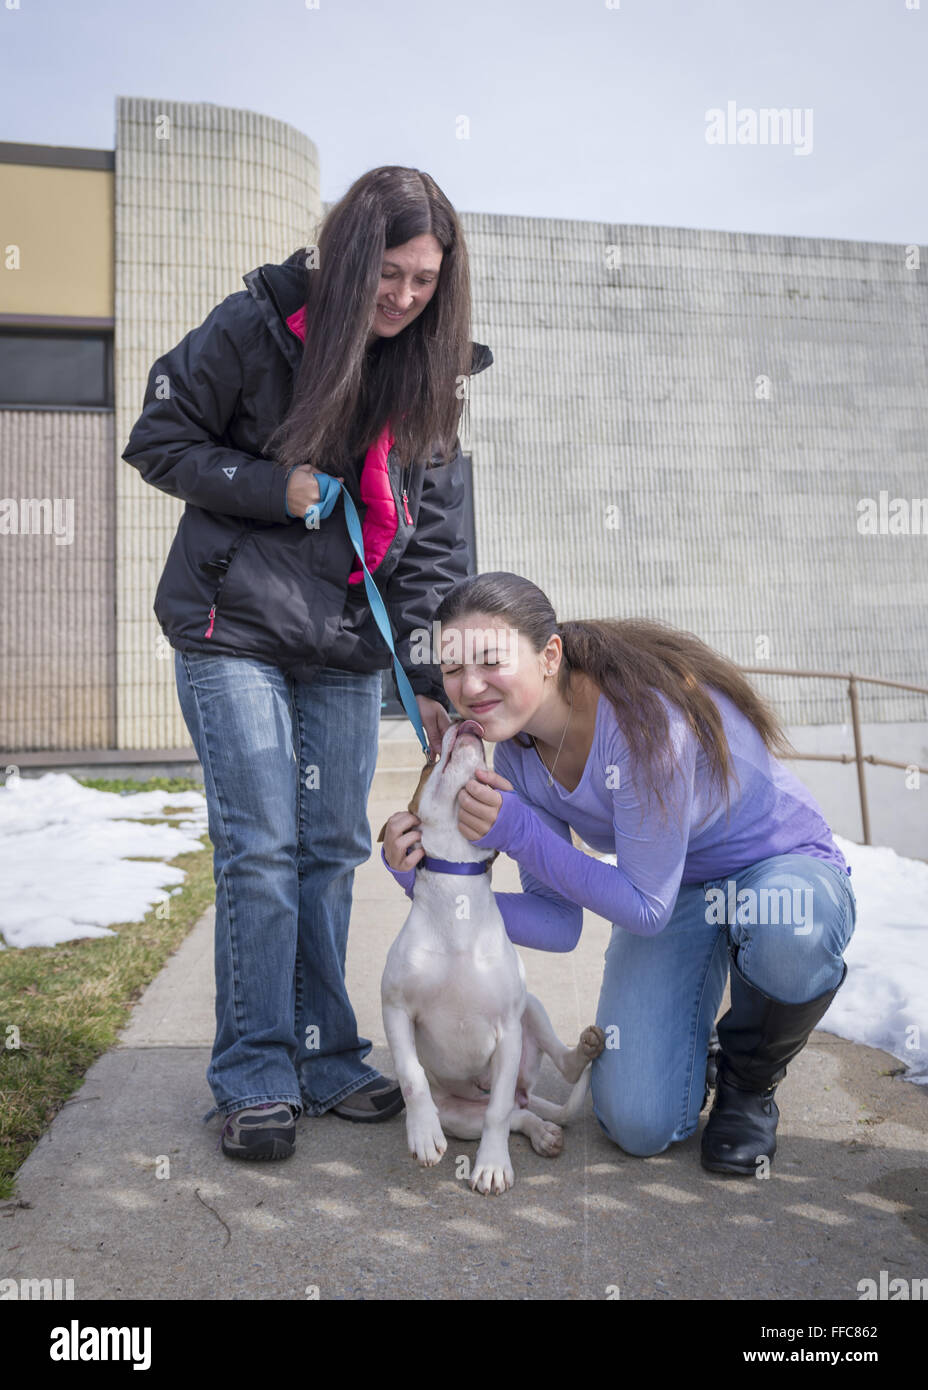 Wantagh, New York, USA. 7th Feb, 2016. EMILY smiles as Halley the beagle licks her on the face, as the teen and - Stock Image